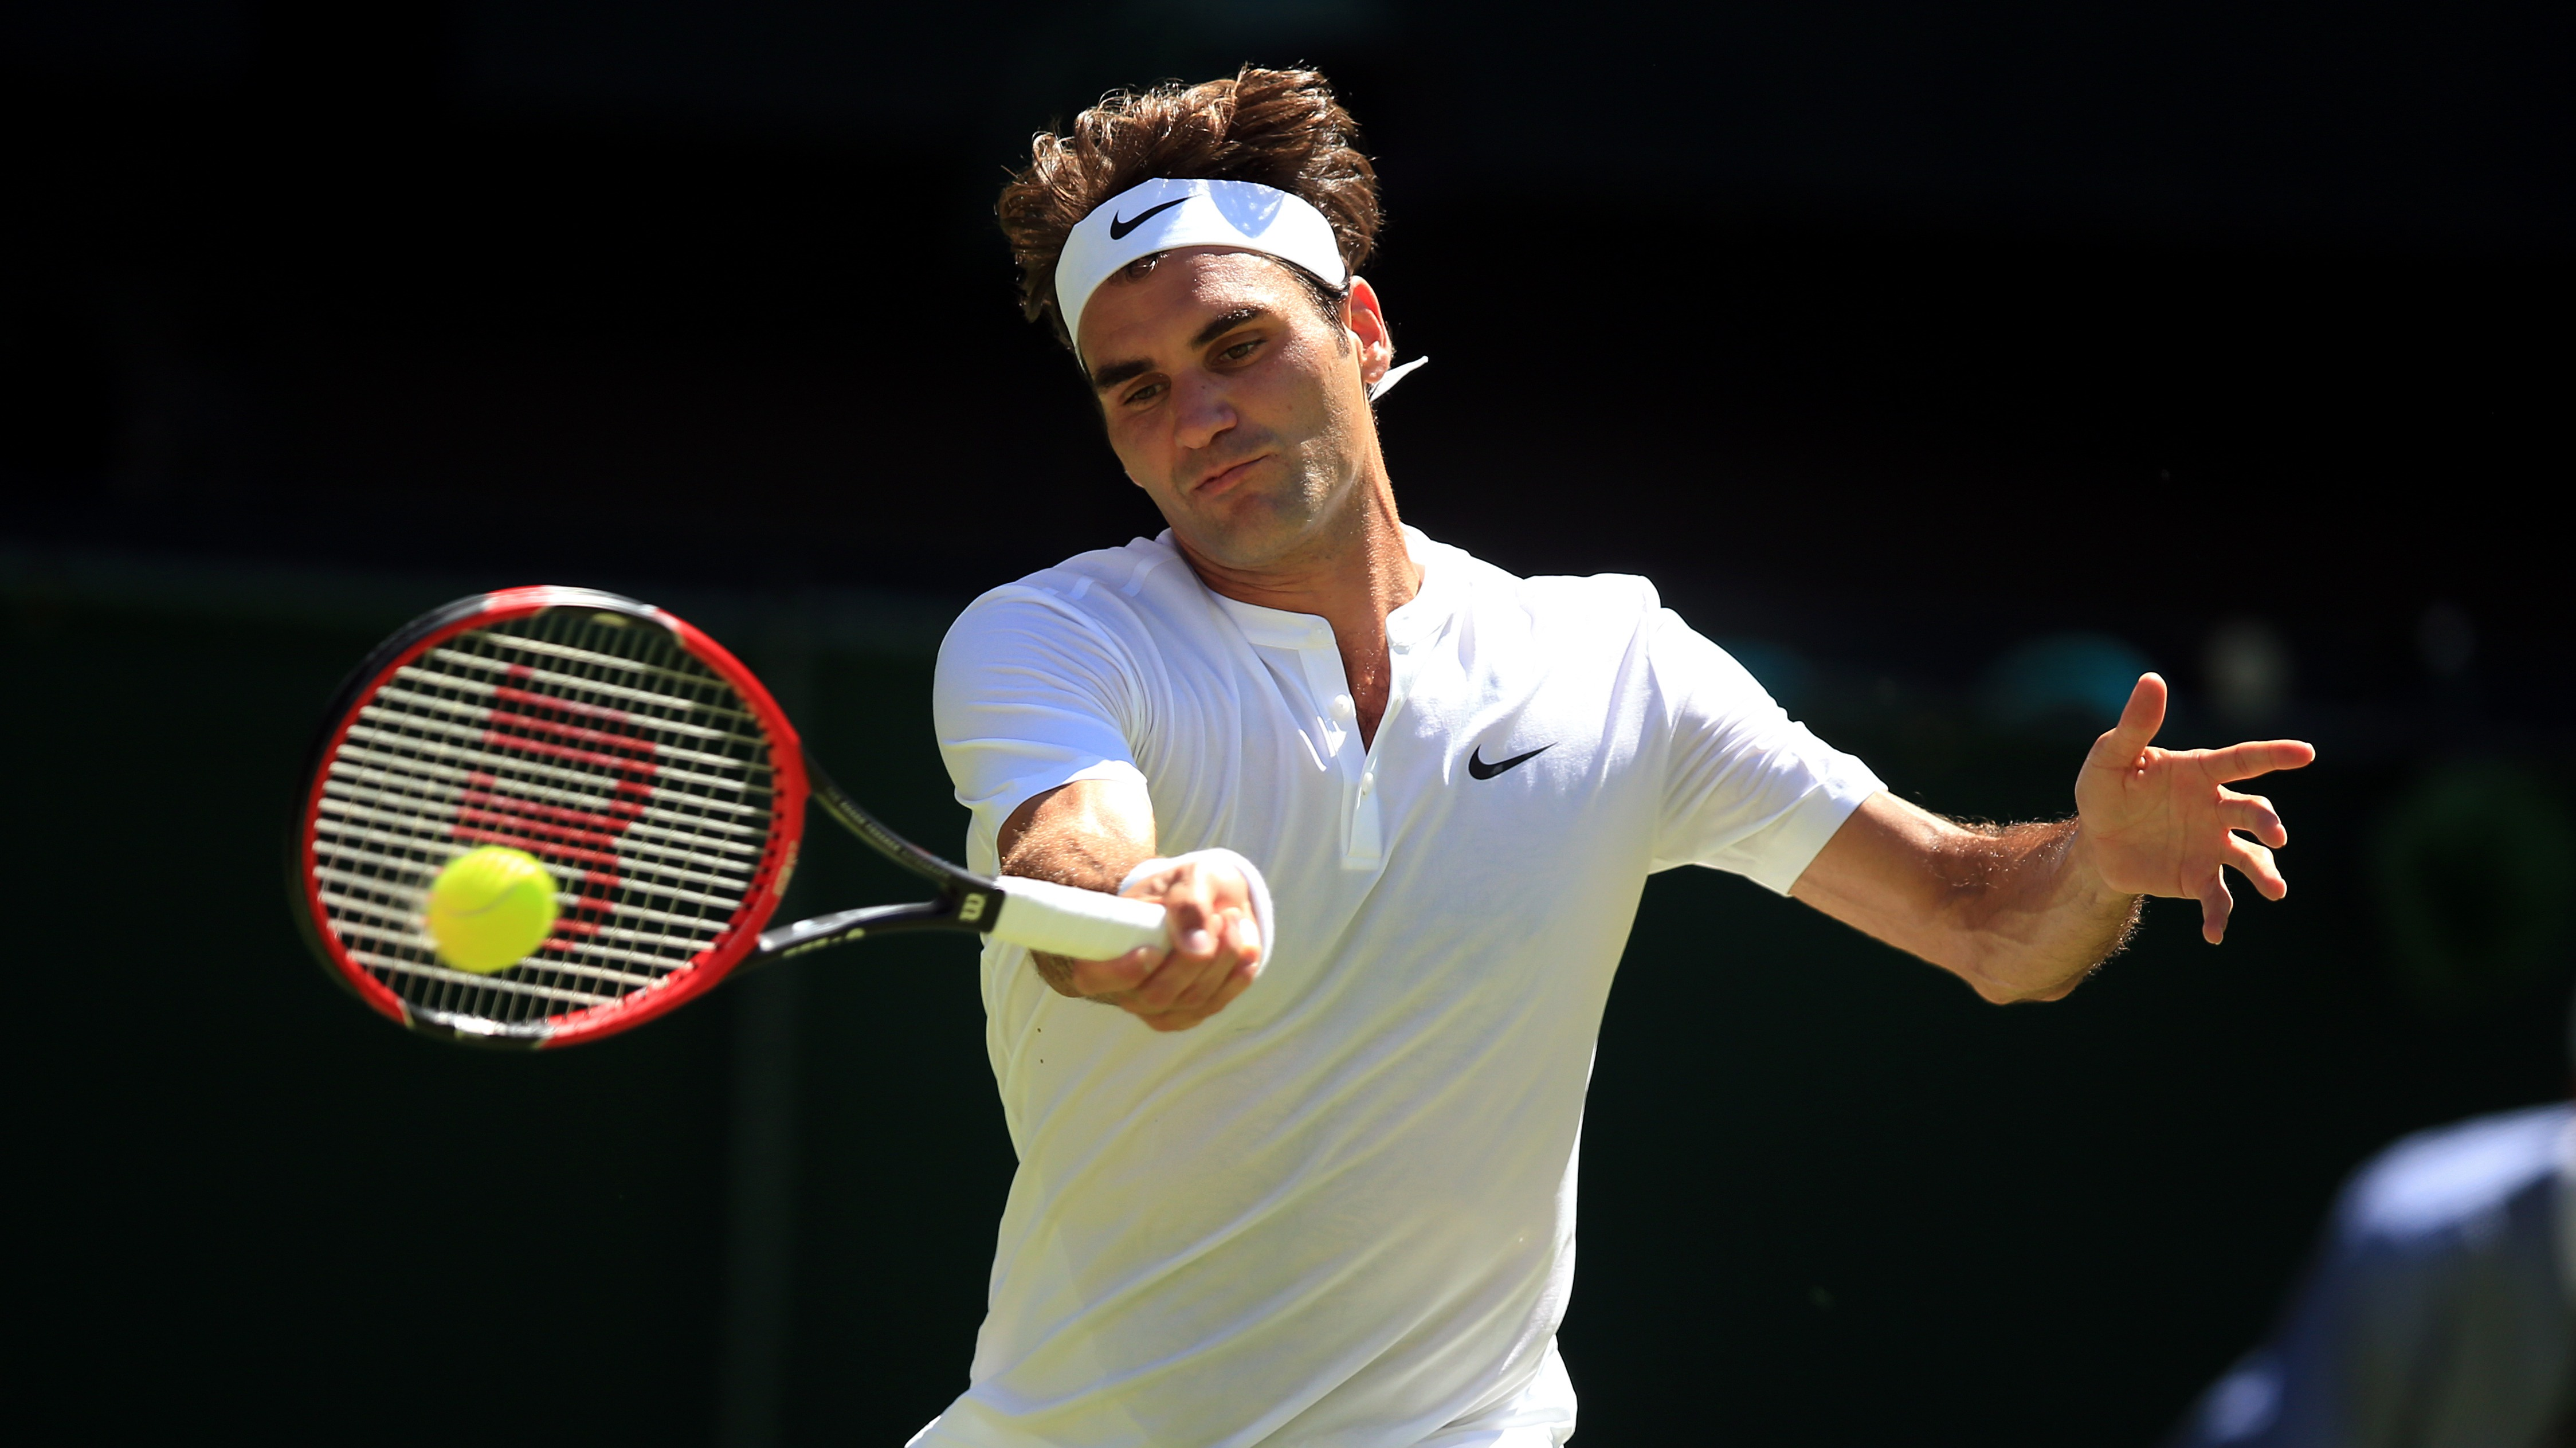 Roger Federer Update: Classy Roger Federer Safely Through In Straight Sets